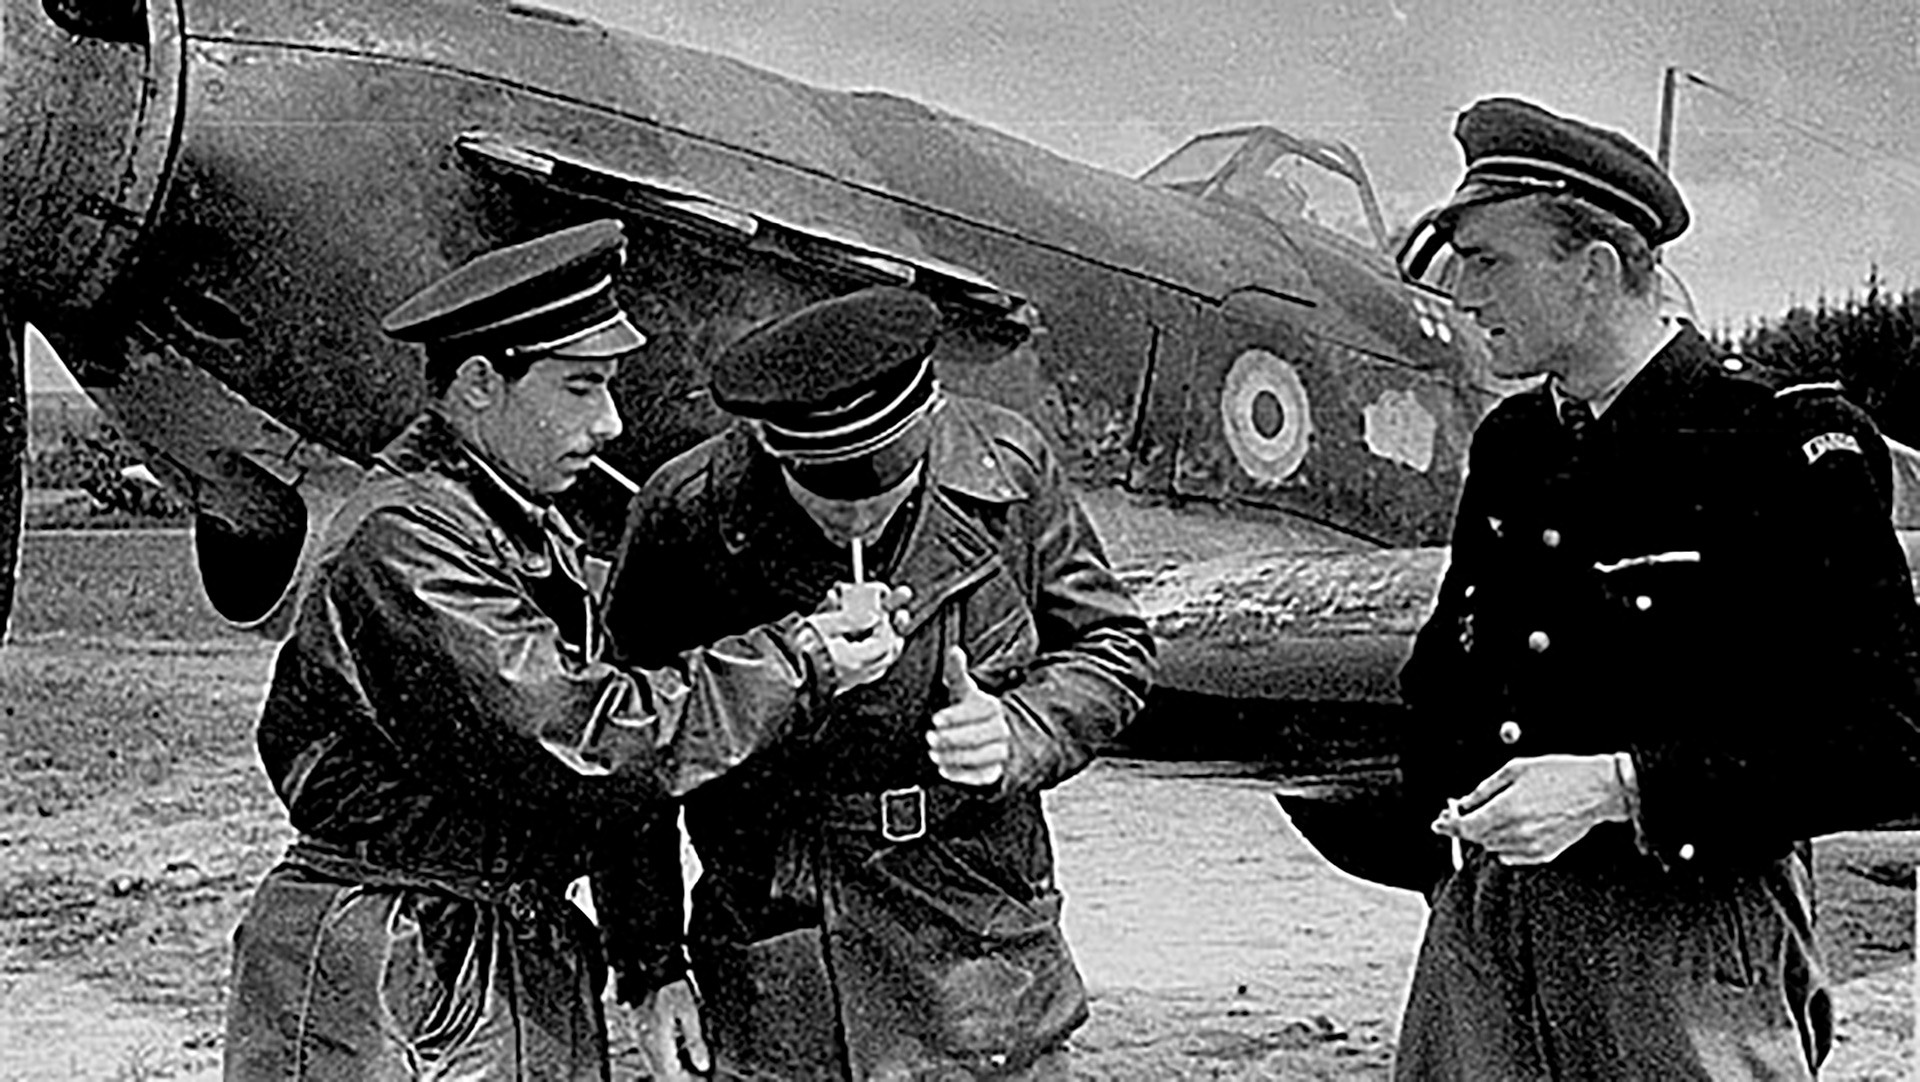 About a hundred Frenchmen fought in the Normandie-Nieman regiment, and for their bravery they received many Soviet military honors